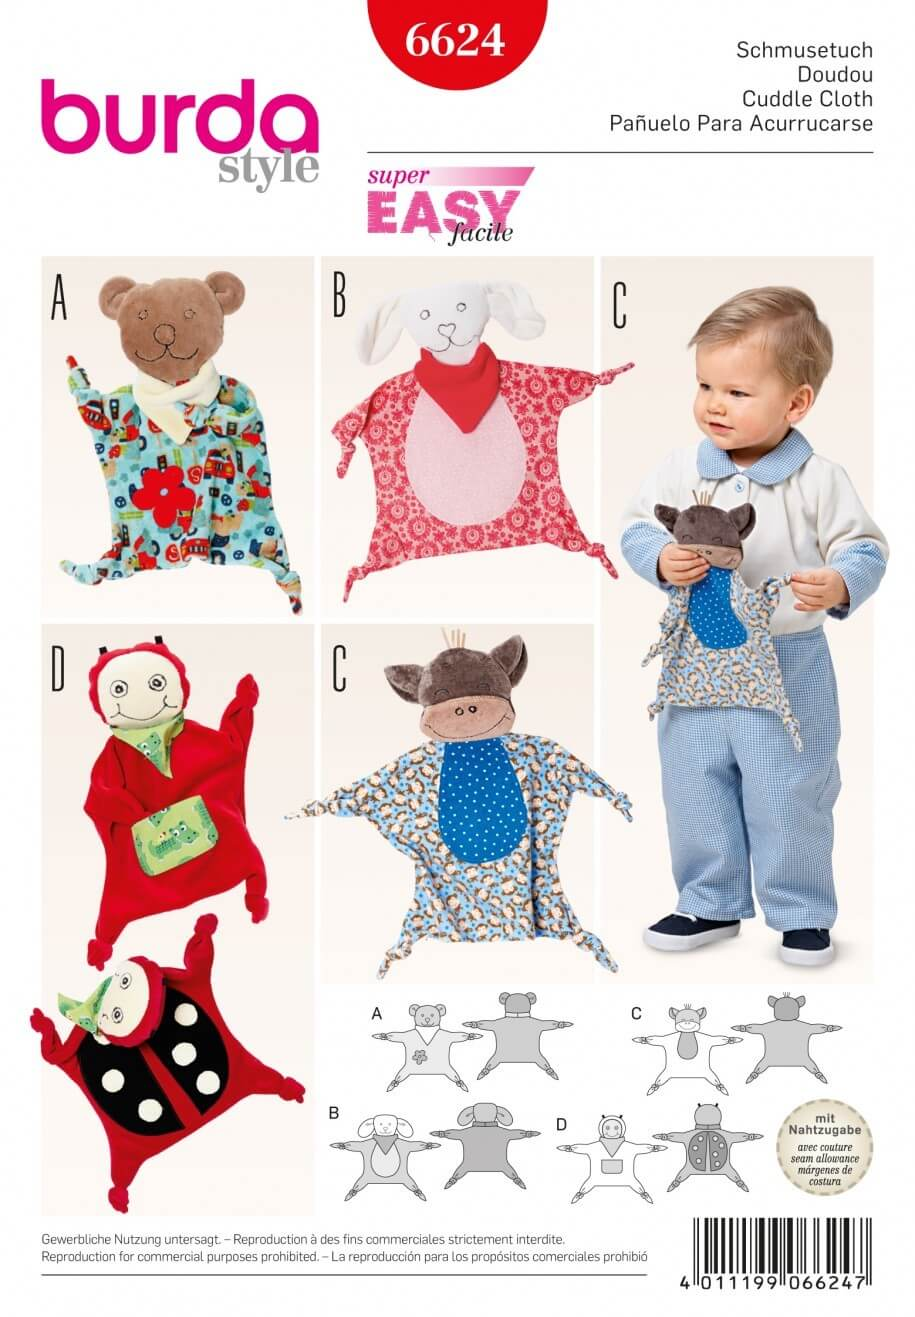 Burda Style Childrens Cuddle Cloth Toy Dress Sewing Pattern 6624